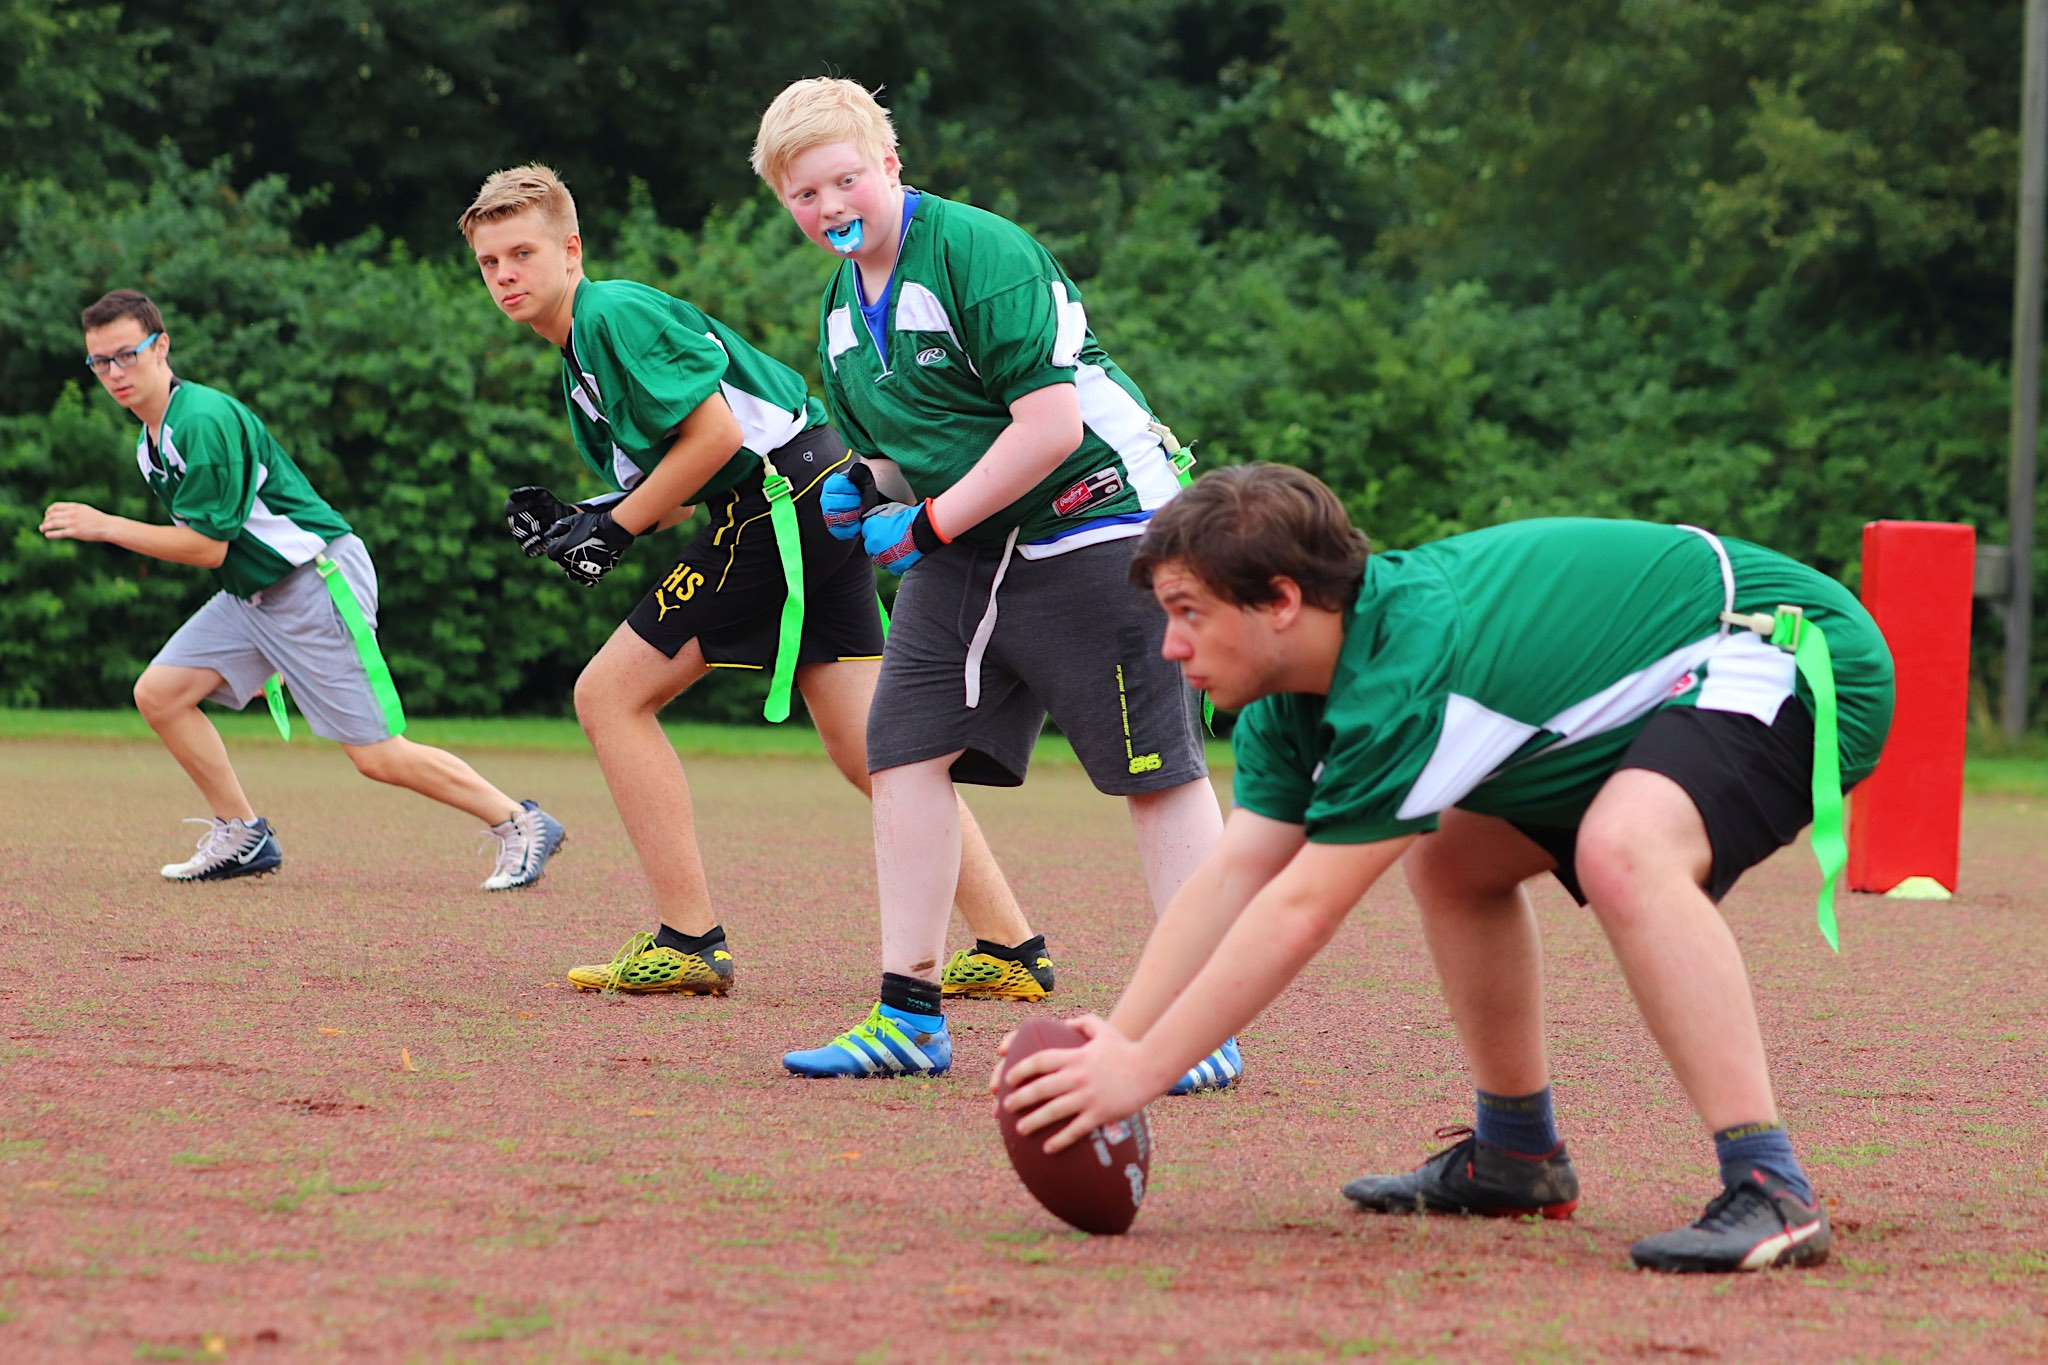 Lumberjacks Ausblick2021 Nov2020 FlagFootball